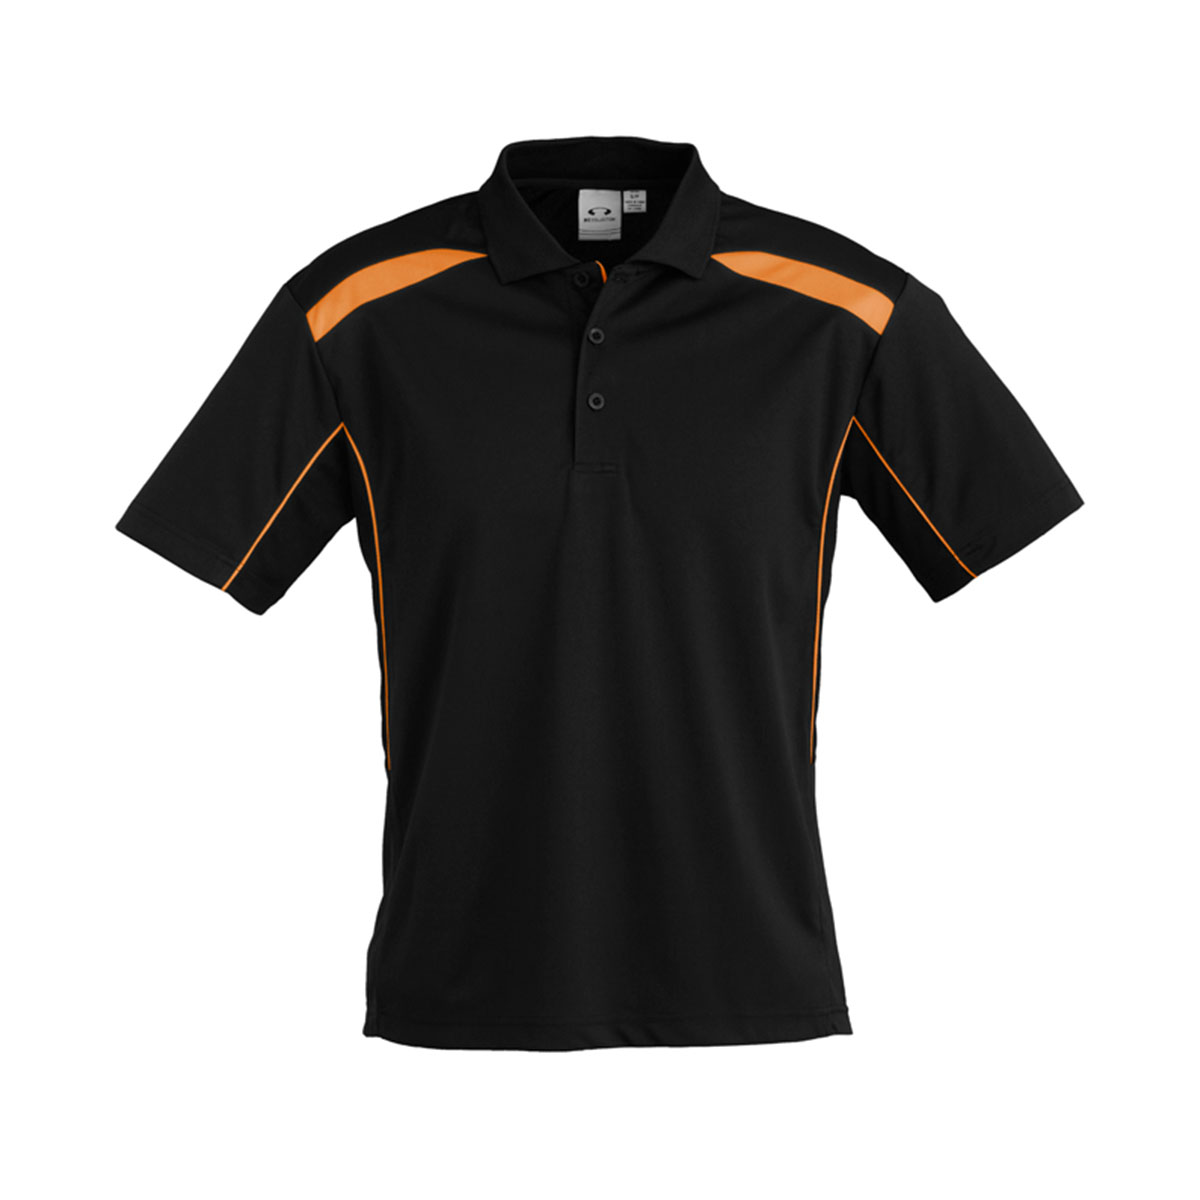 Mens United Short Sleeve Polo-Black / Orange